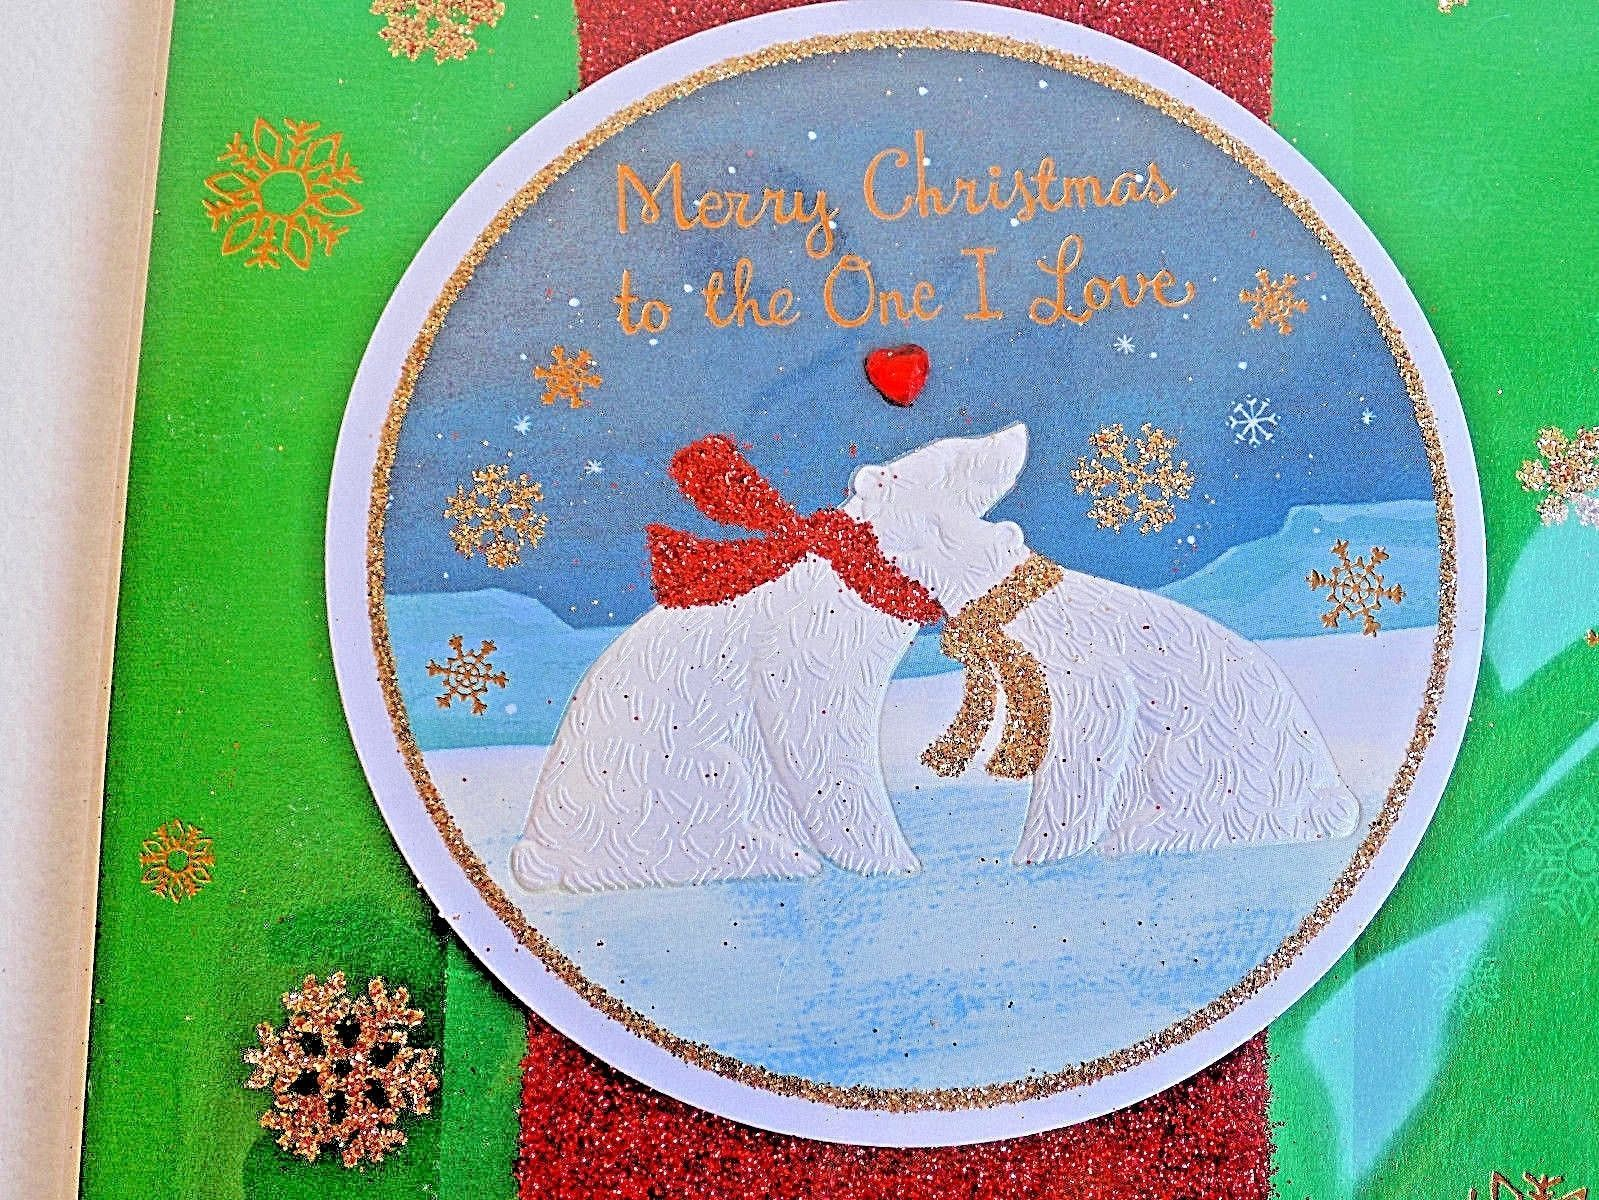 Merry Christmas to The One I Love Polar Bears American Greetings Christmas Card